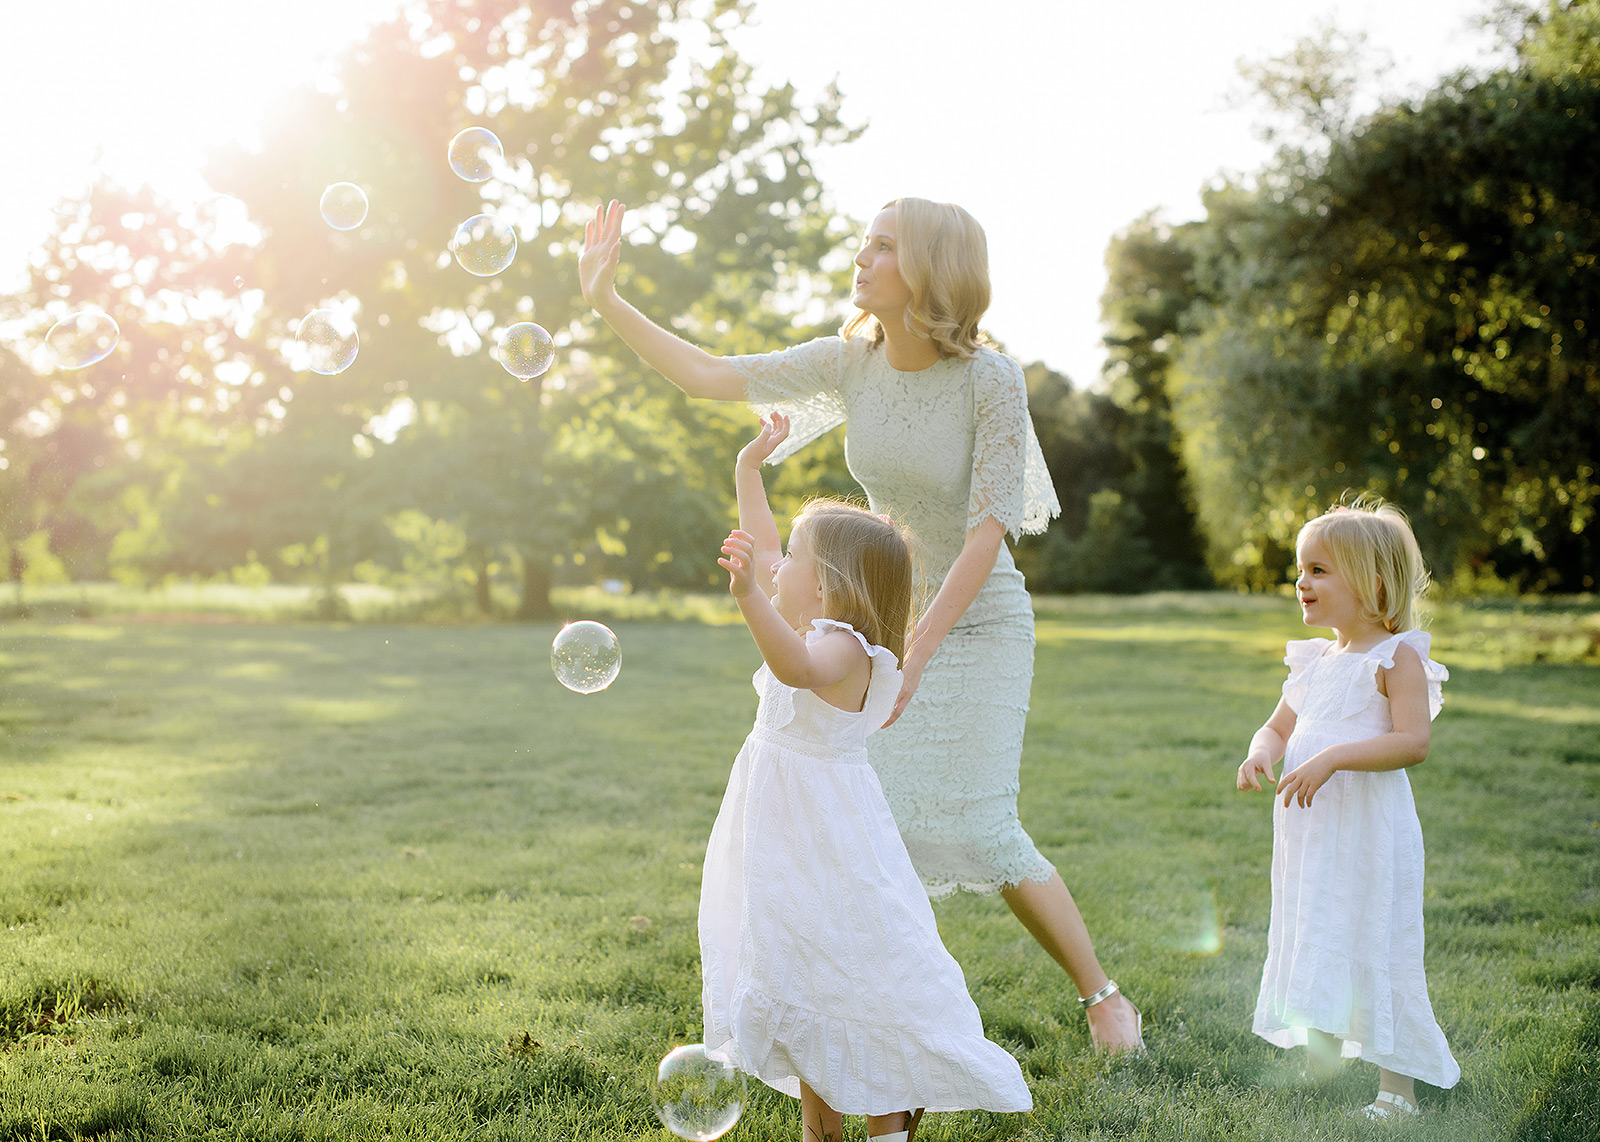 Mom and daughters blowing bubbles outdoors in Sacramento